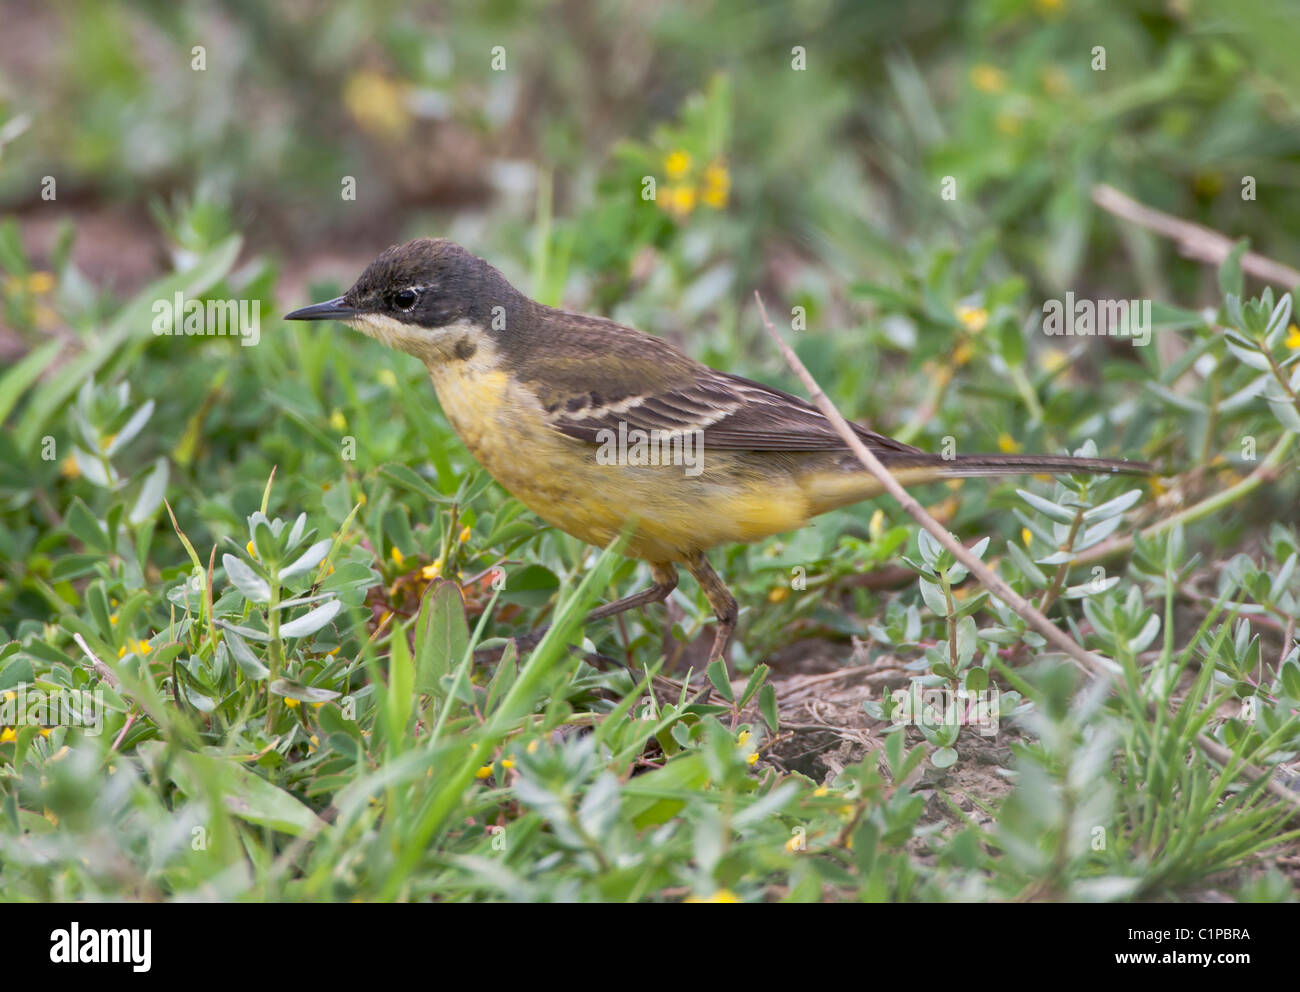 Black-headed Wagtail female  Motacilla flava feldegg Southern Turkey April - Stock Image